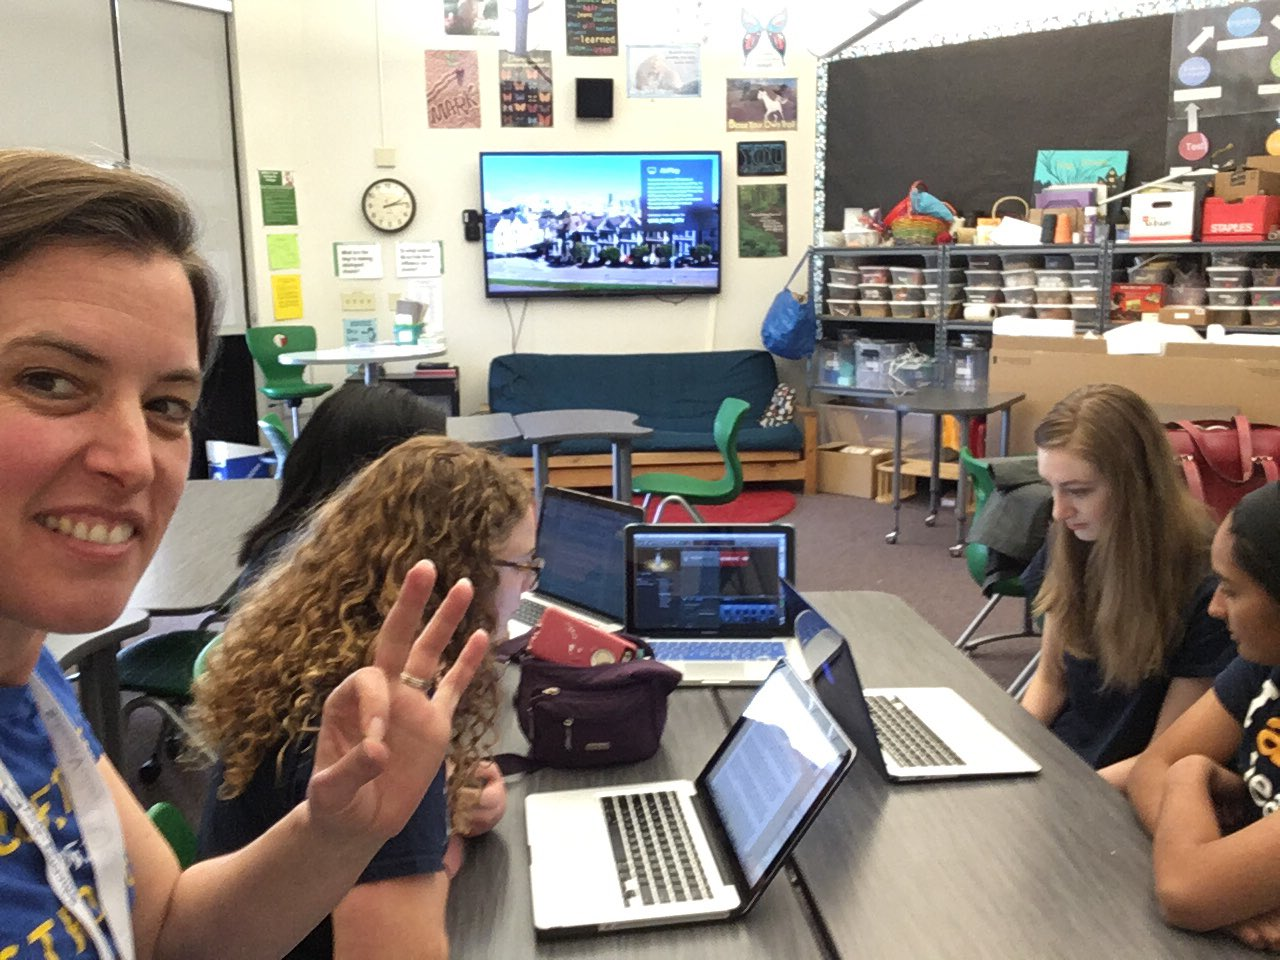 The Tiger Tech Team recording the next episode of Towards the Sun podcast on location at #svcue https://t.co/vDuKQcAKK4